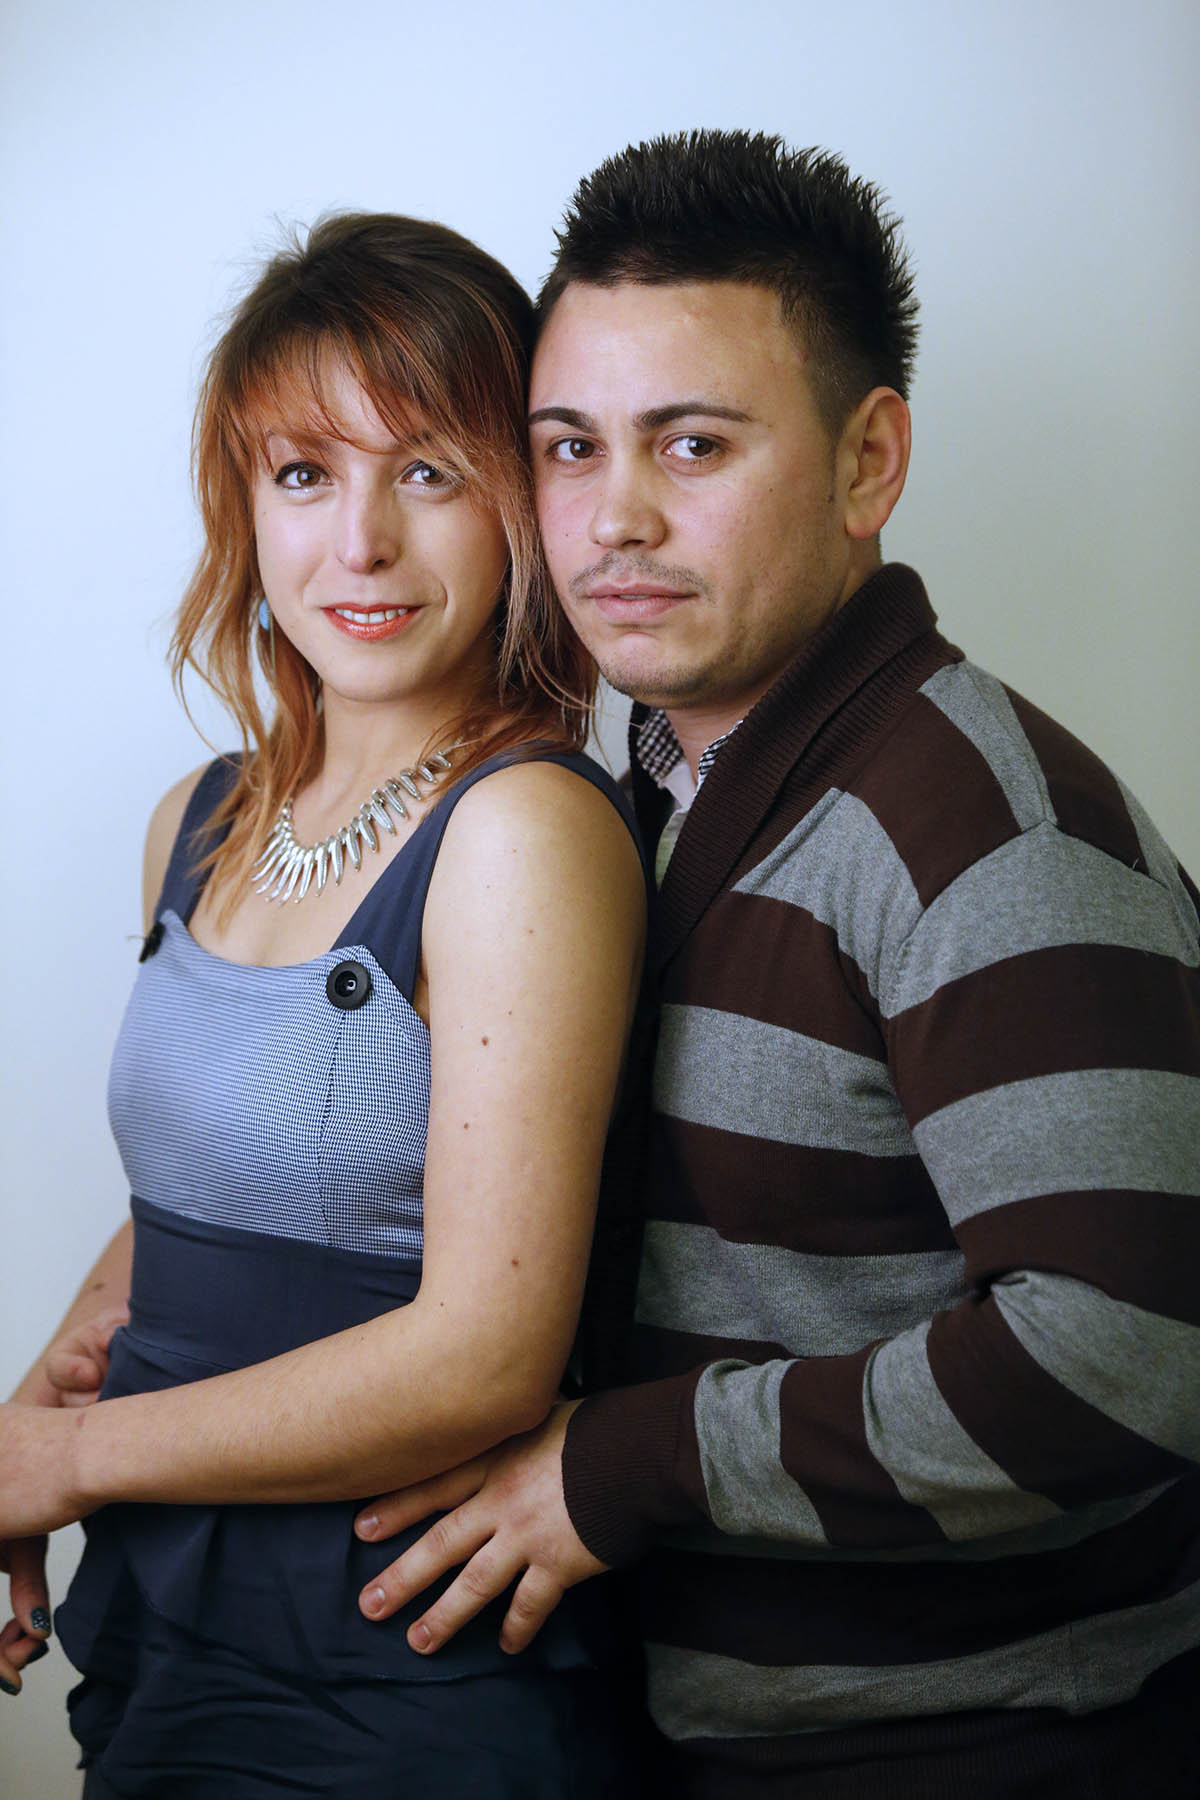 Alexandra Taropa with her boyfriend and dance partner, Ovidiu Lucian Hustiu.